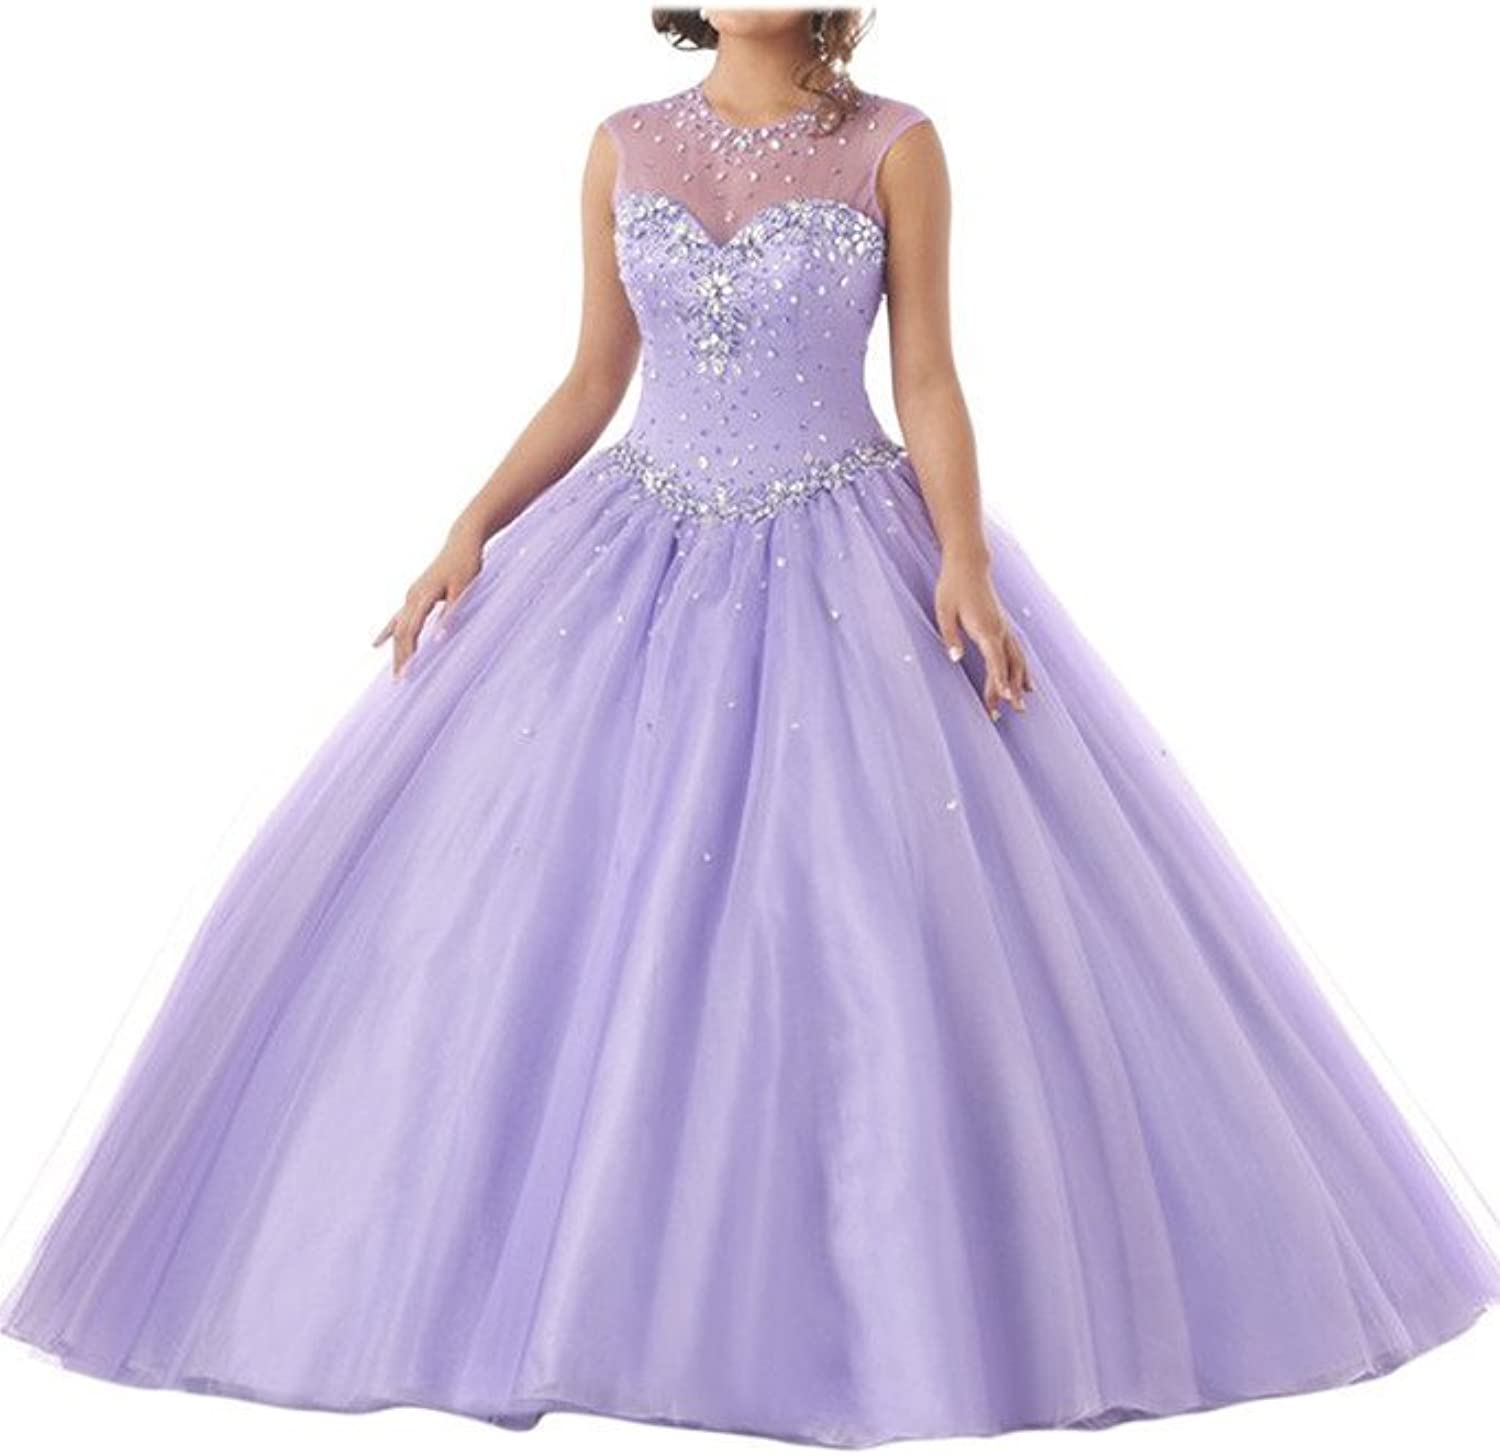 Angel Bride Junior's Jewel Beading Sheer Back Ball Tulle Gown Quinceanera Dress